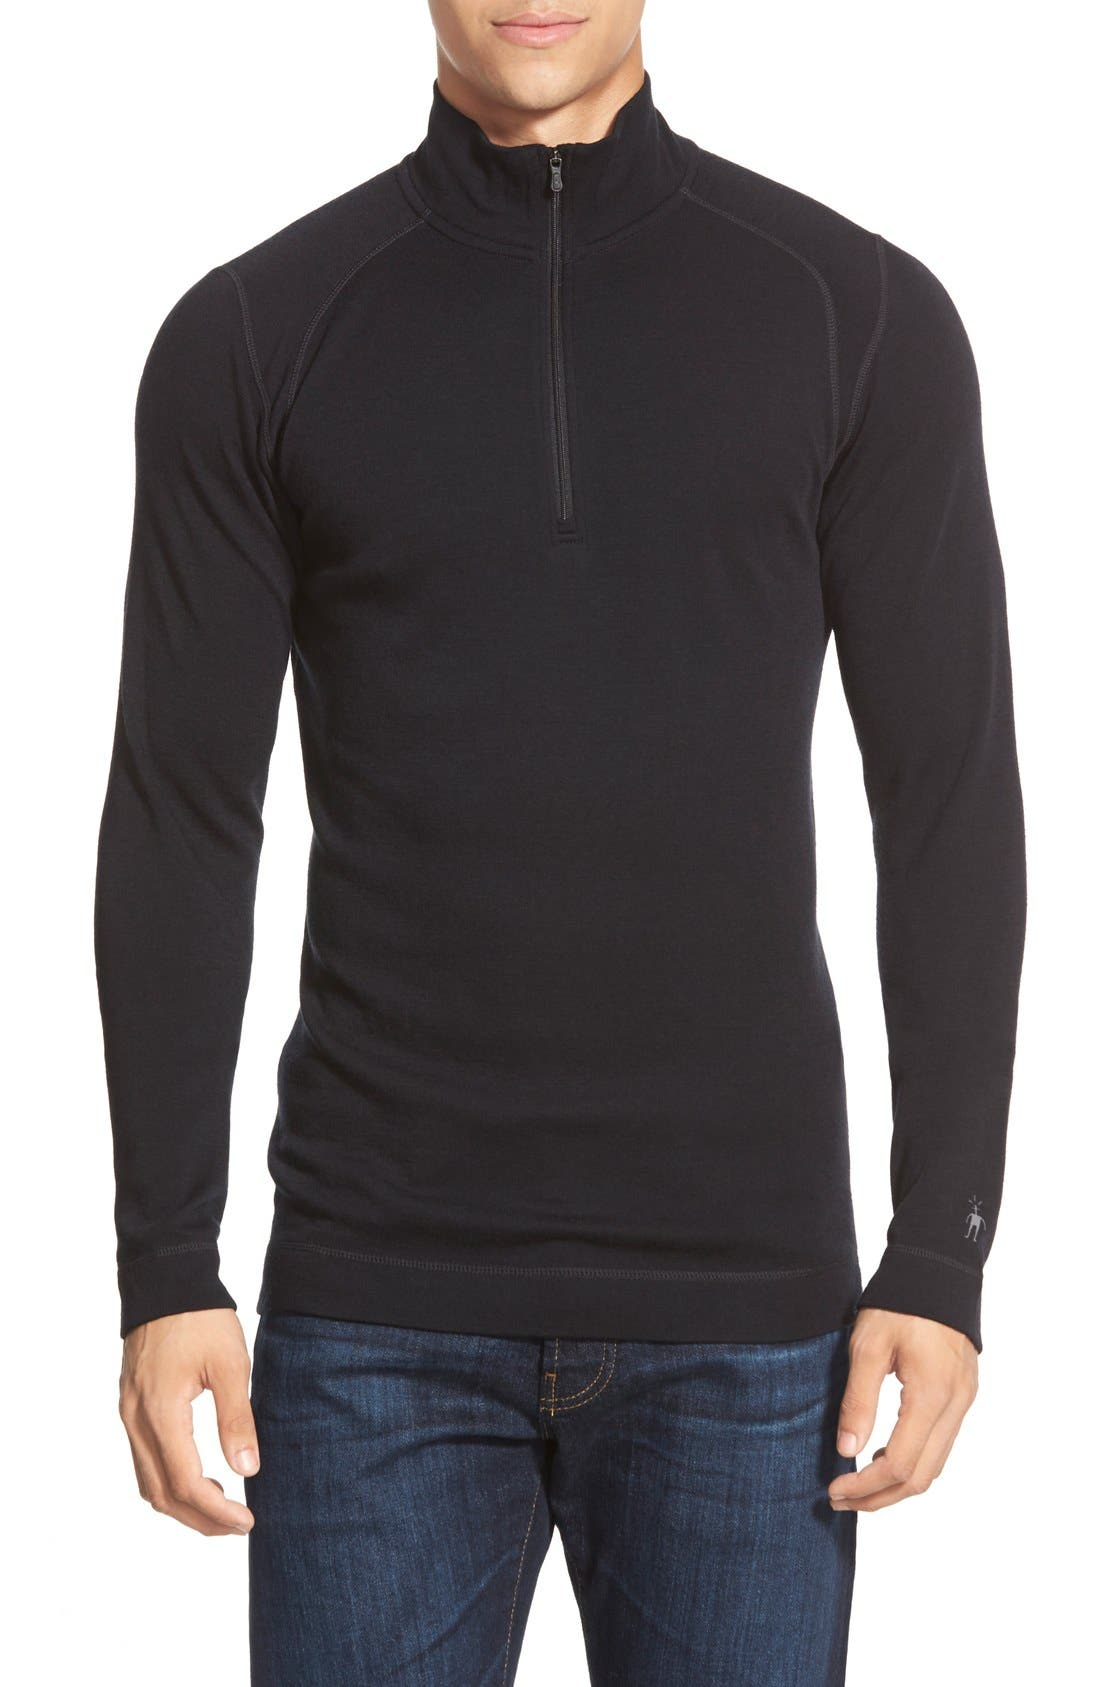 Merino 250 Base Layer Quarter Zip Pullover,                         Main,                         color, Black